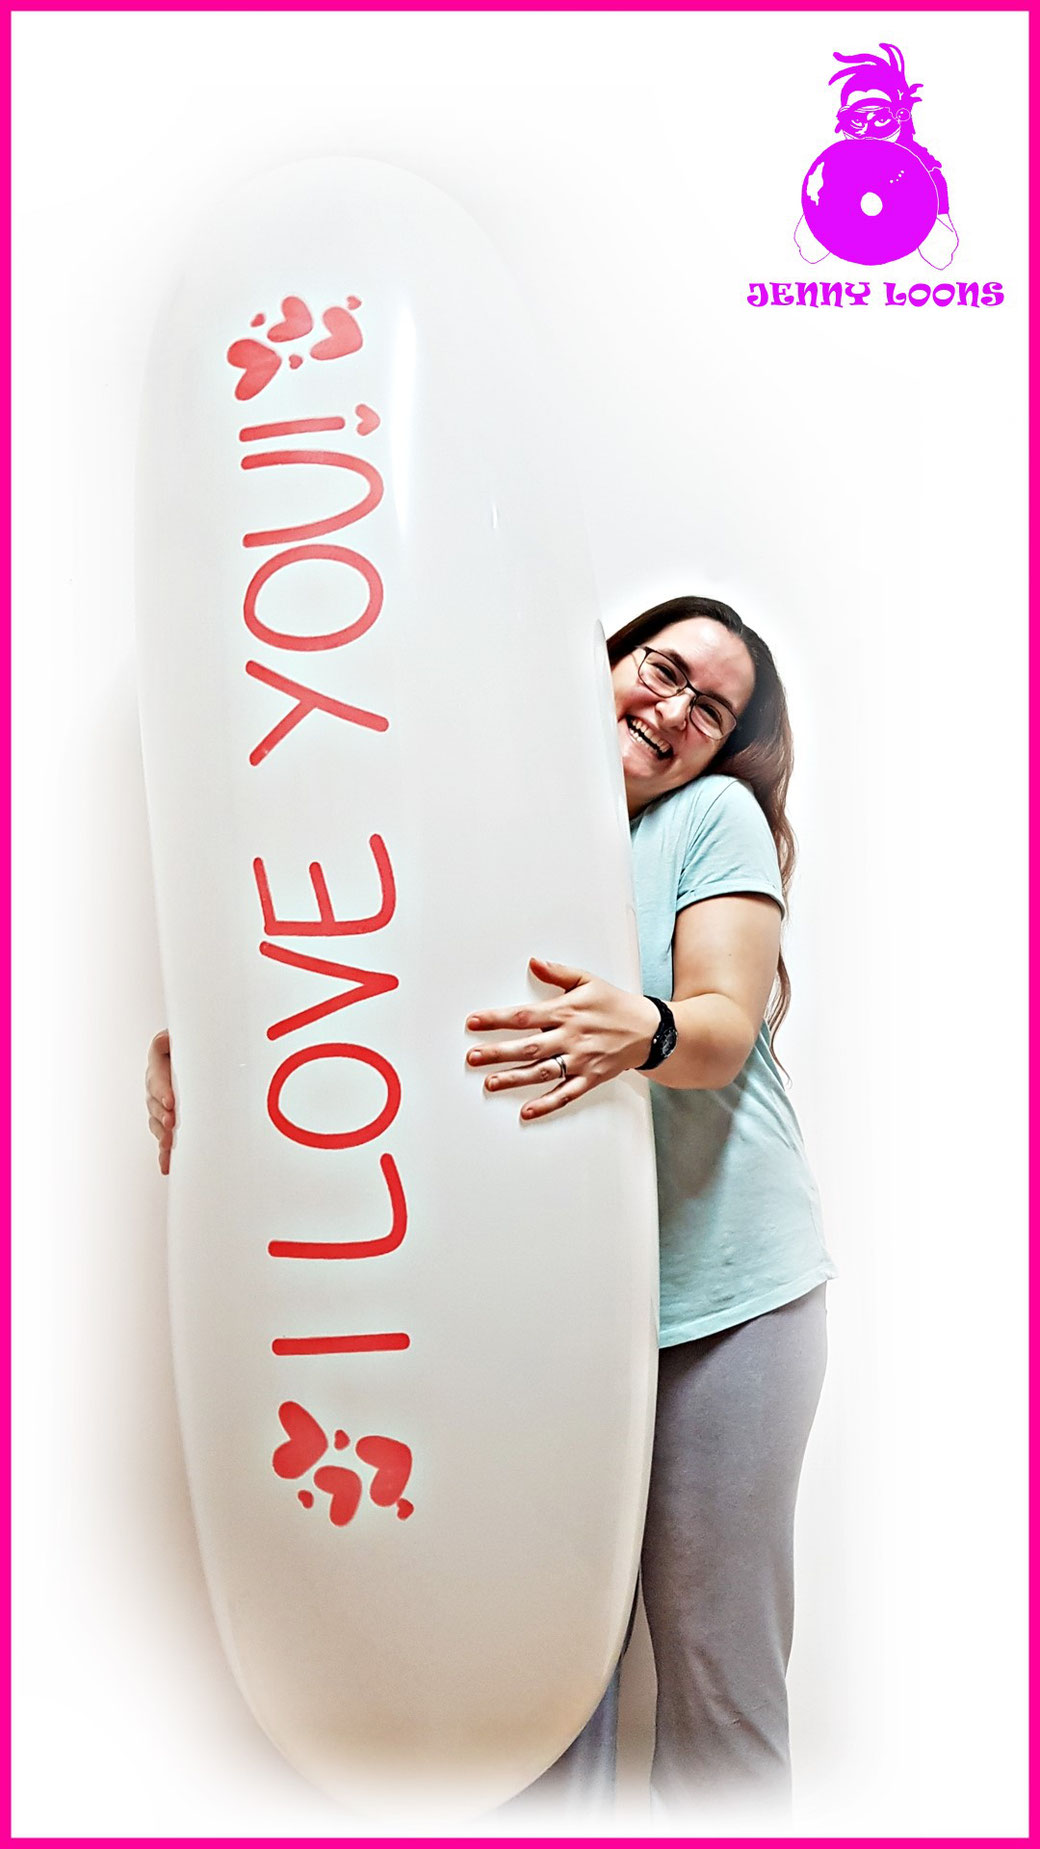 CATTEX I love you Ich liebe dich Luftballon Giant balloon Banner Zeppelin Riesenballon